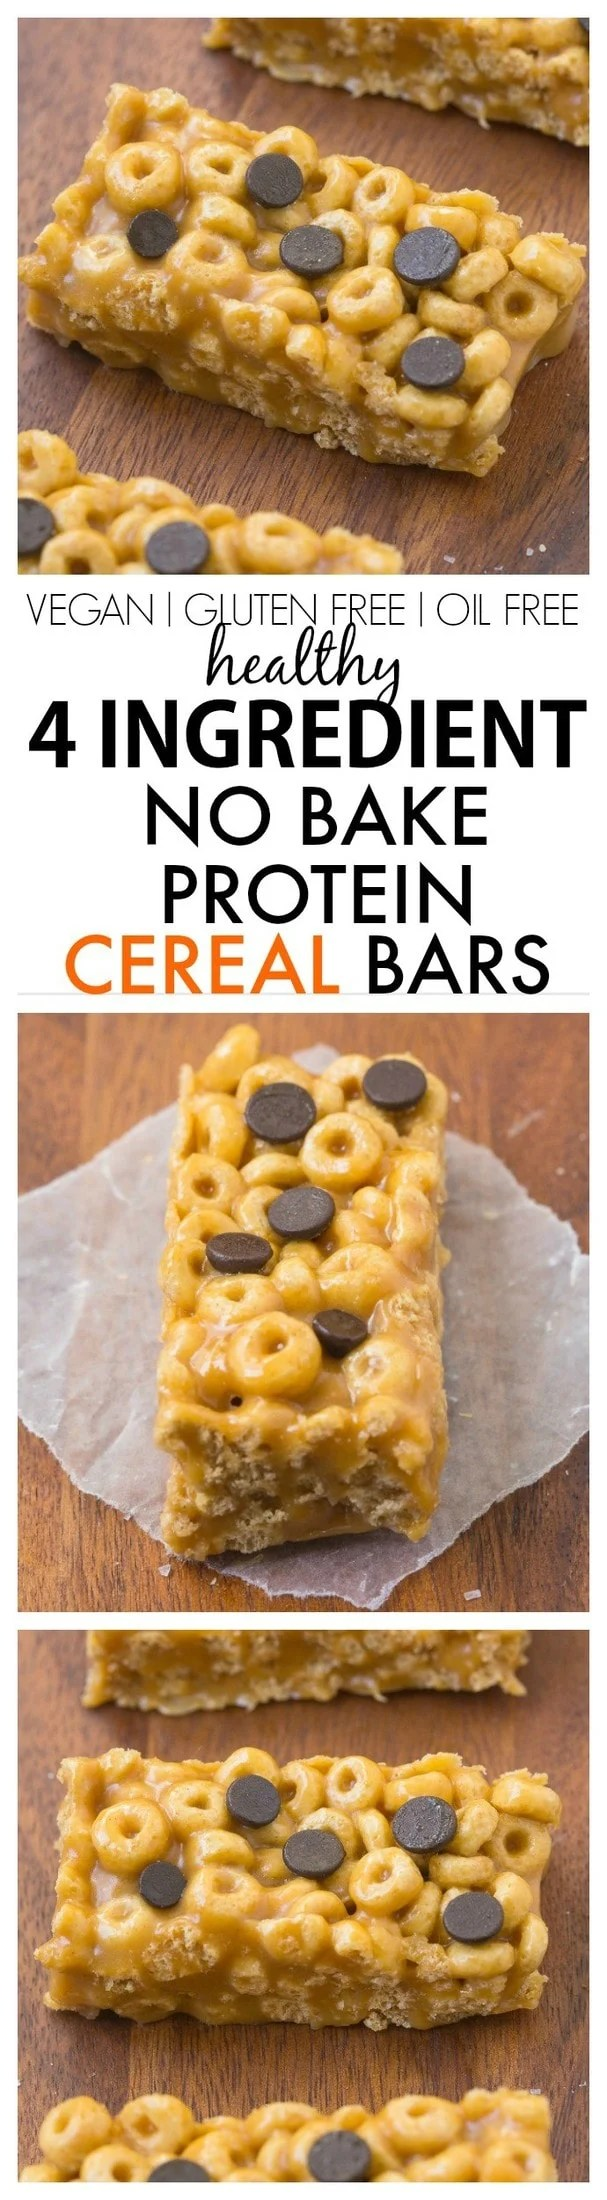 Healthy 4 Ingredient No Bake Protein Cereal Bars- Super easy, healthy, homemade protein cereal bars with NO nasties at all! {vegan, gluten free, oil free recipe}- thebigmansworld.com